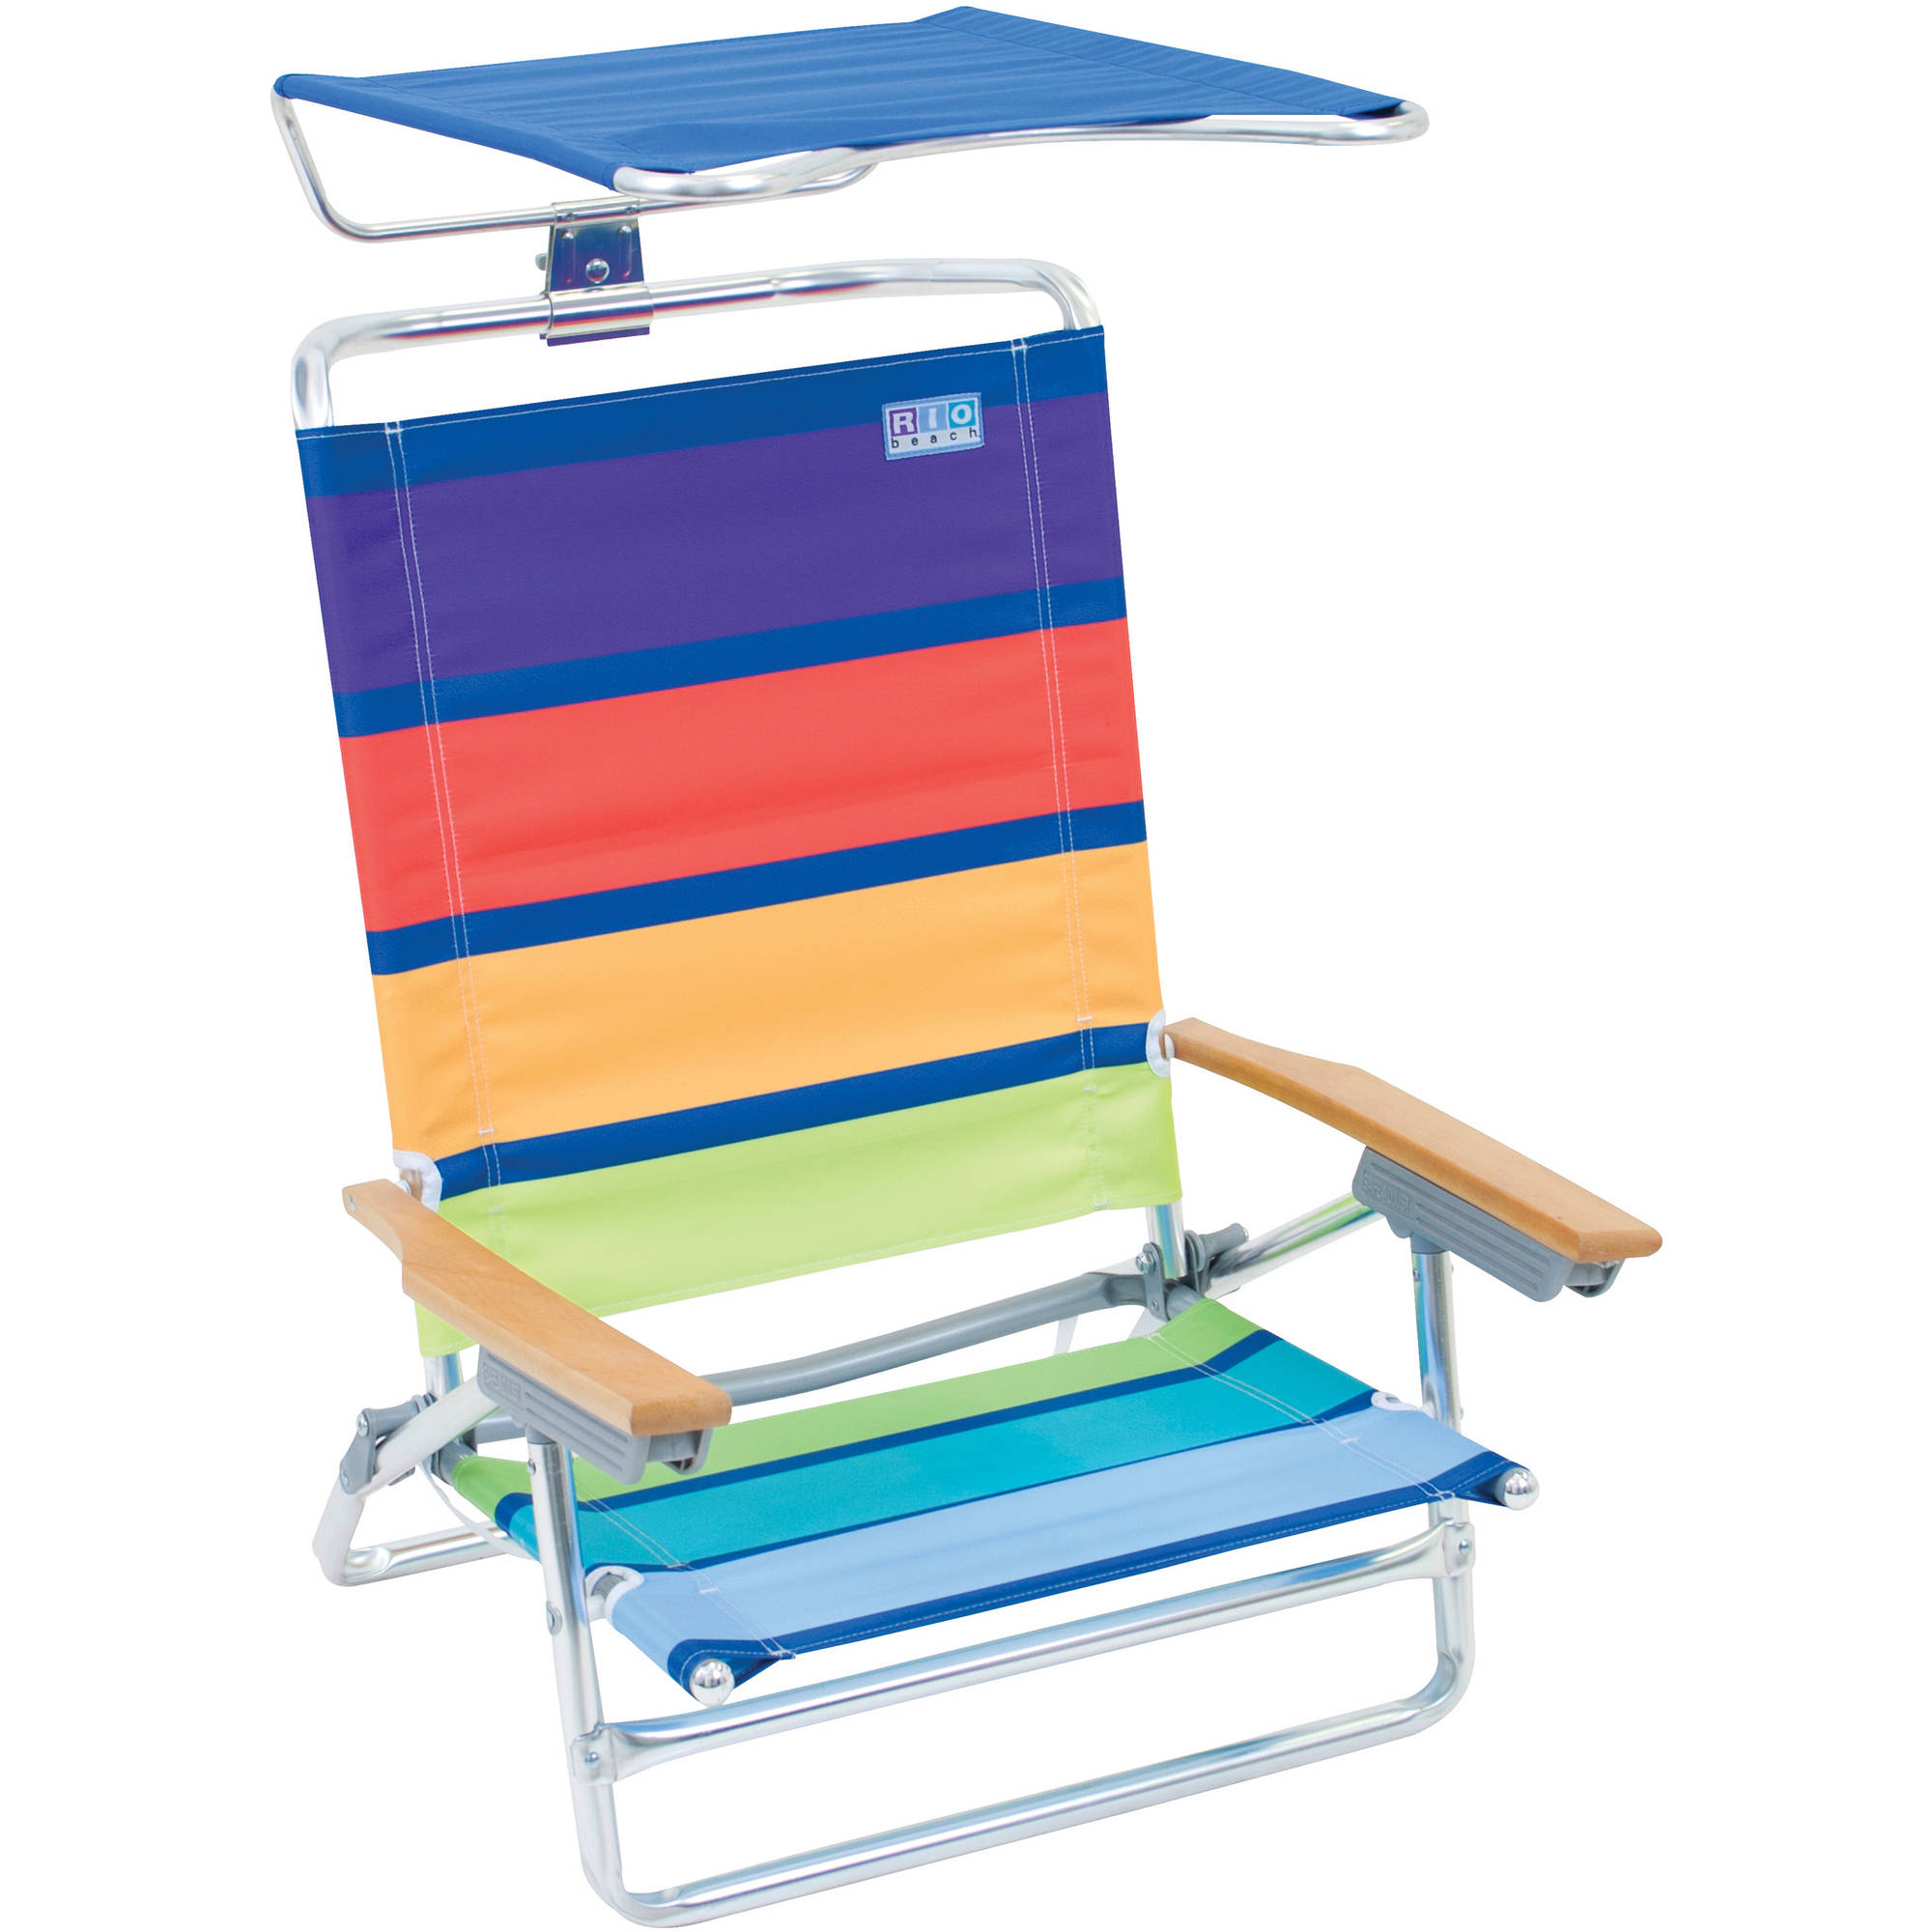 Rio Classic 5-Position High-Back Beach Chair with Adjustable Canopy